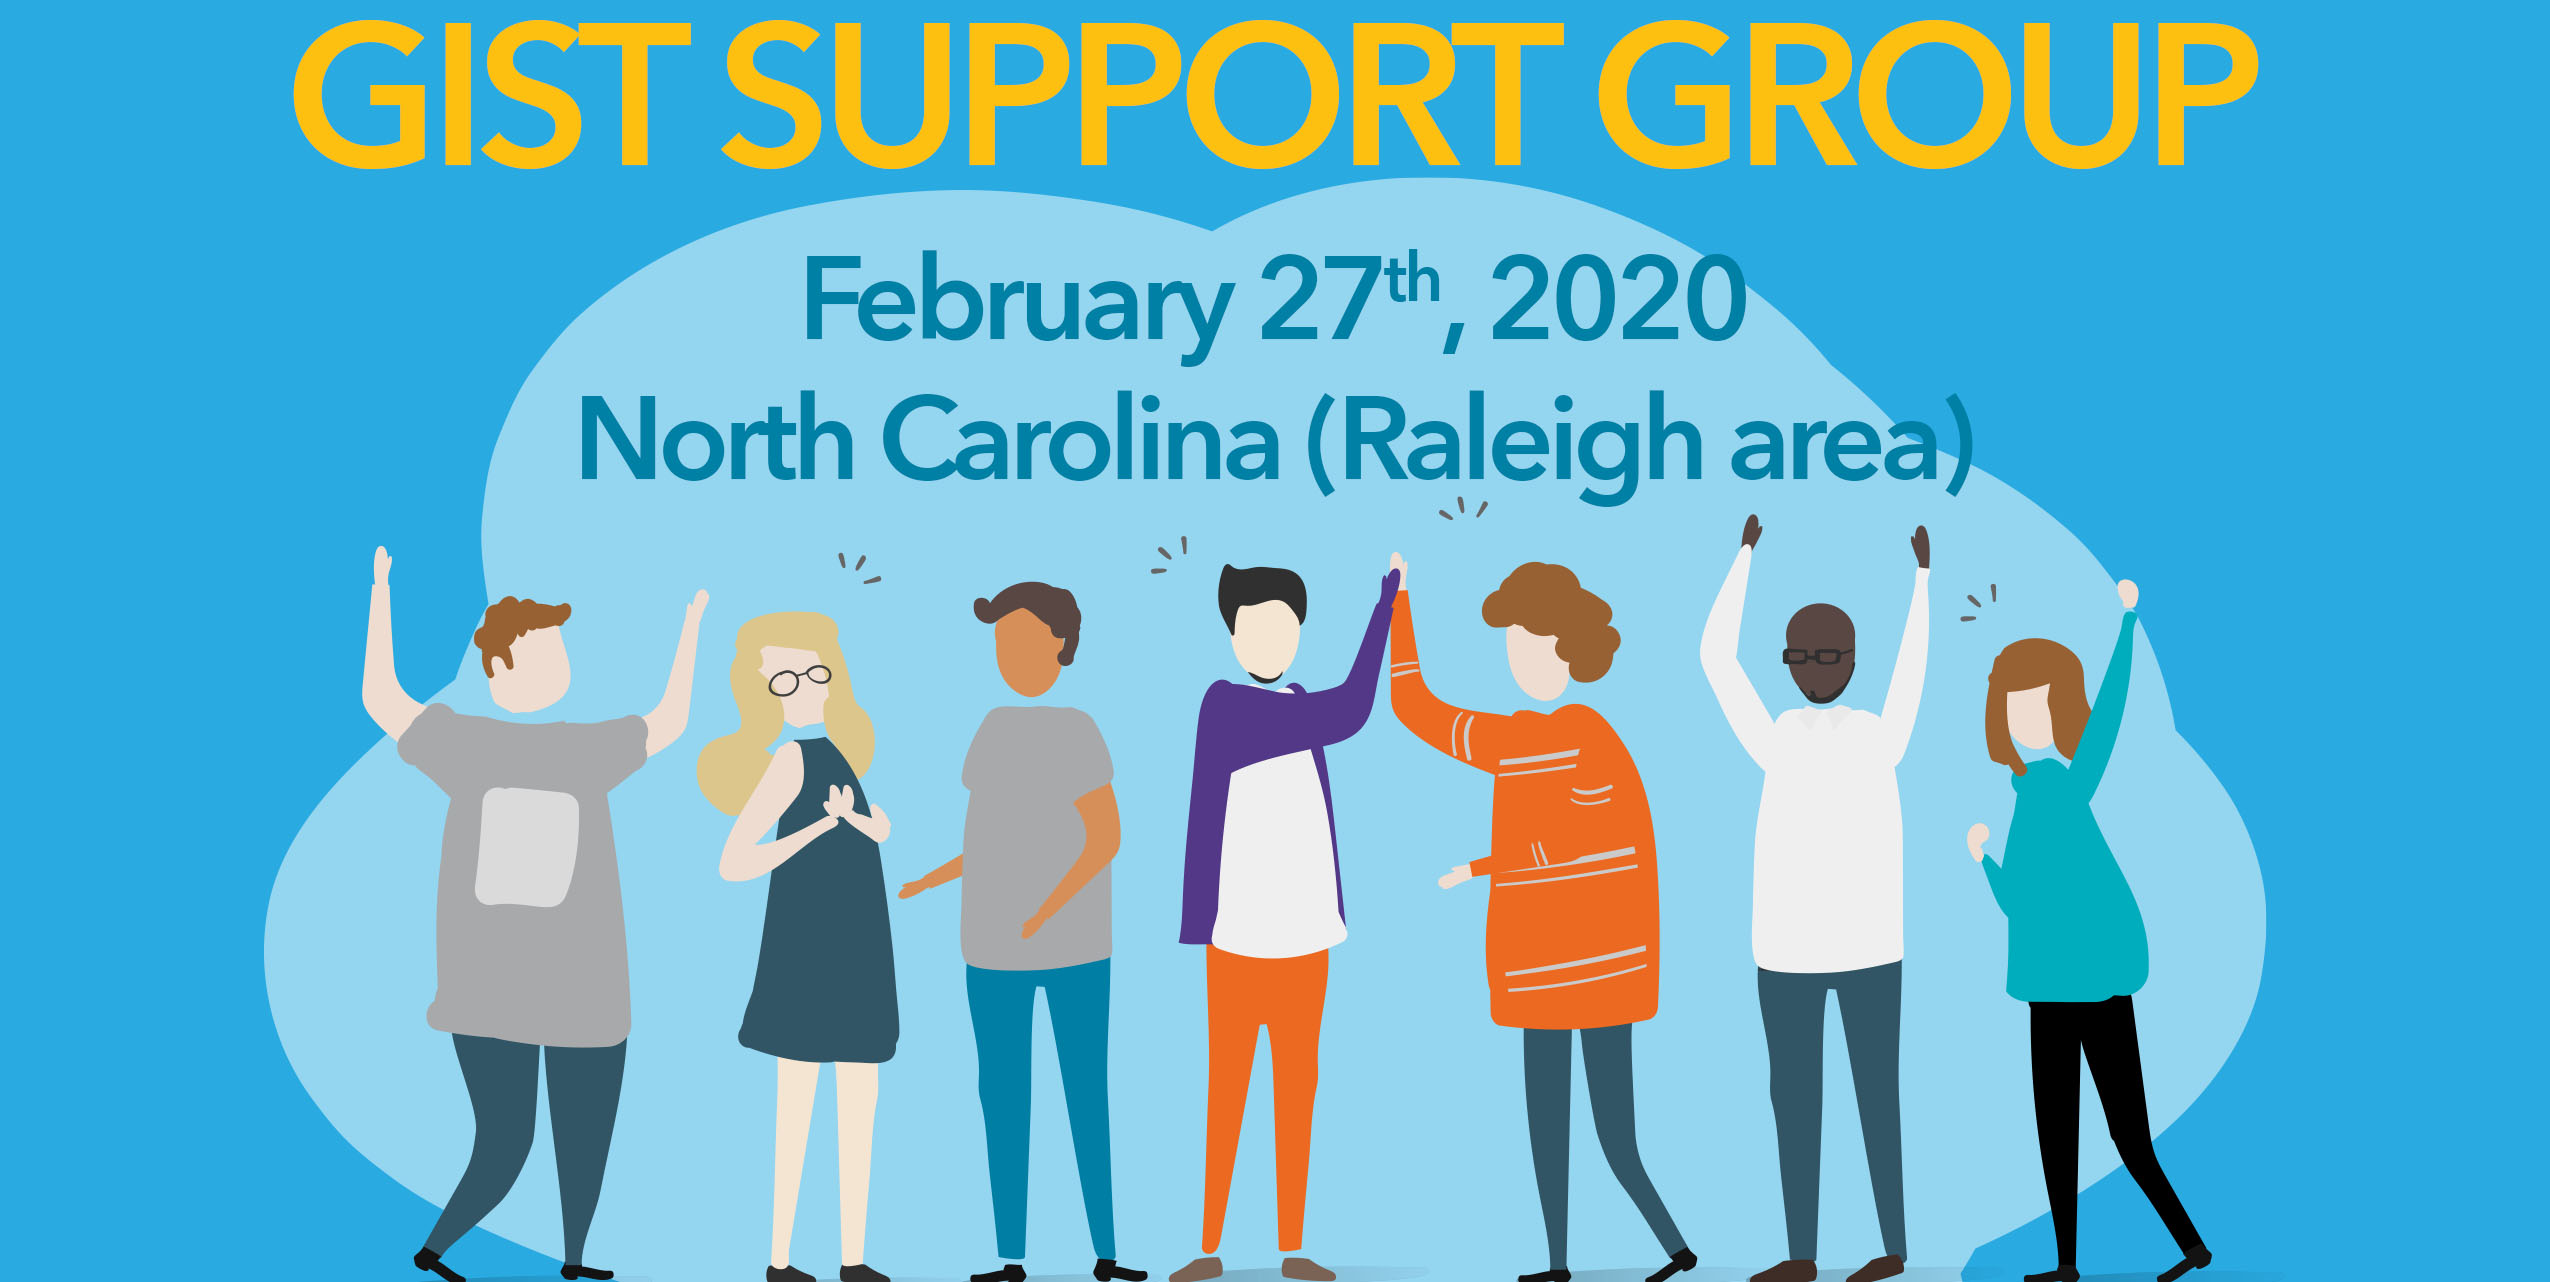 North Carolina Support Group Meeting